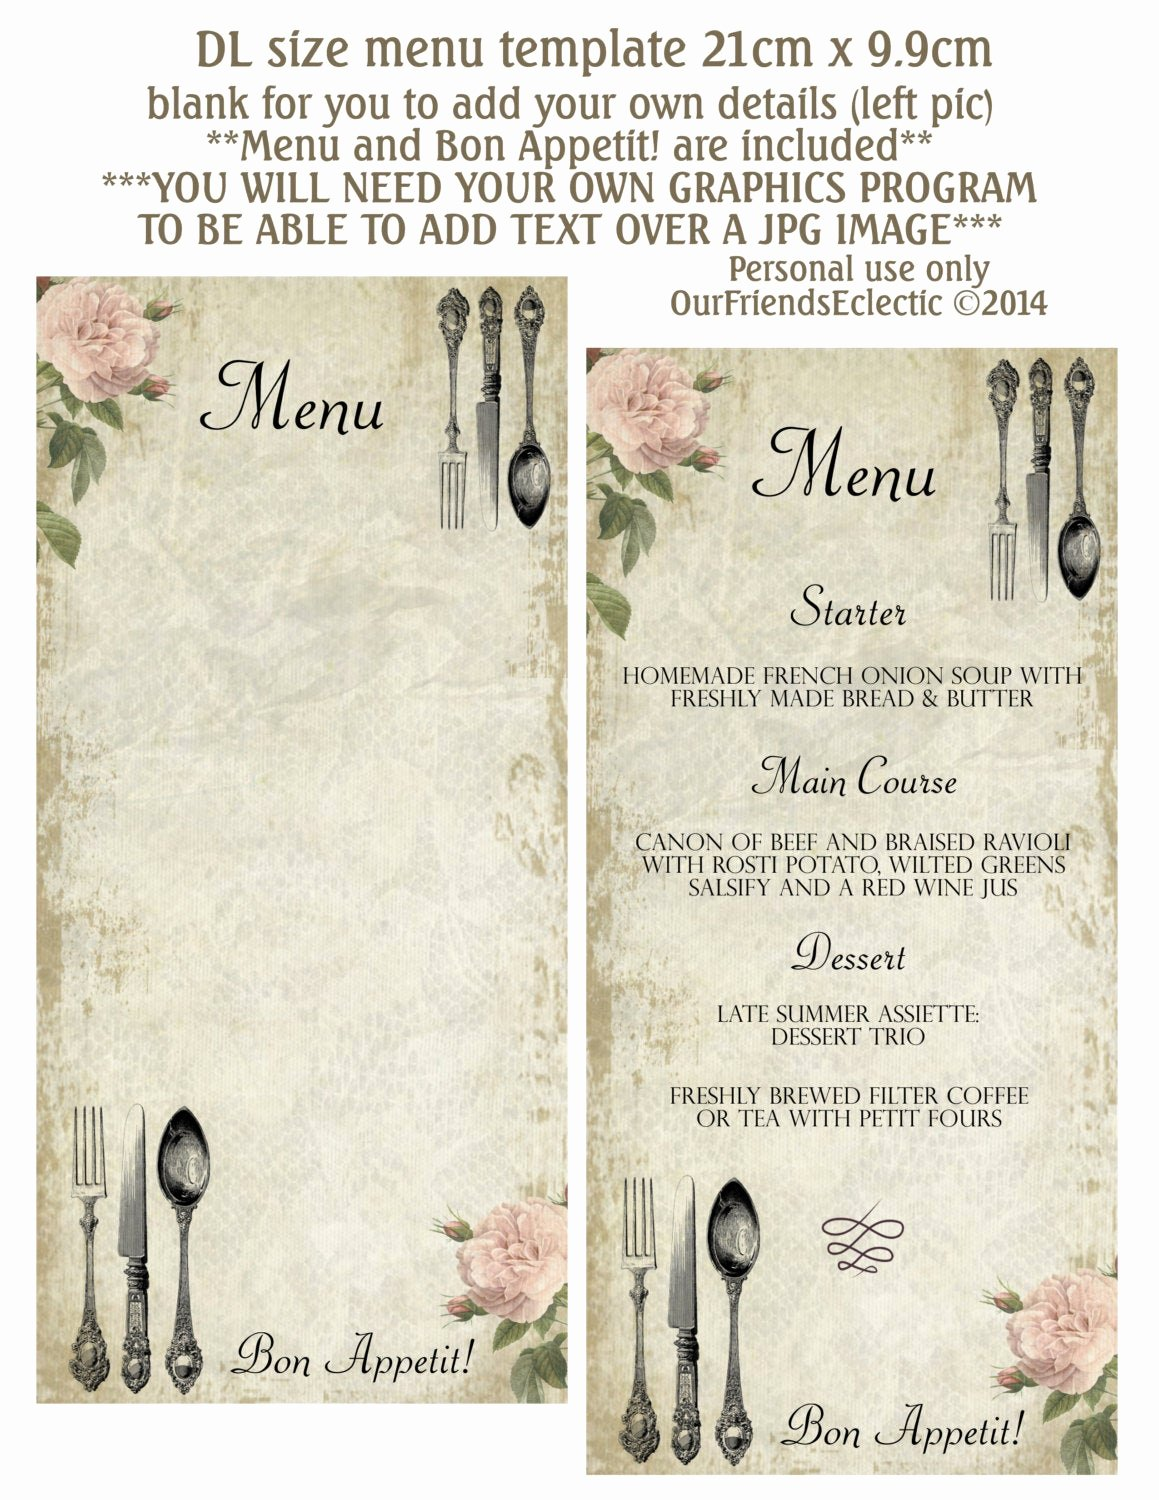 Blank Menu Template Beautiful Printable Menu Blank Menu Shabby Pink Rose Vintage Cutlery